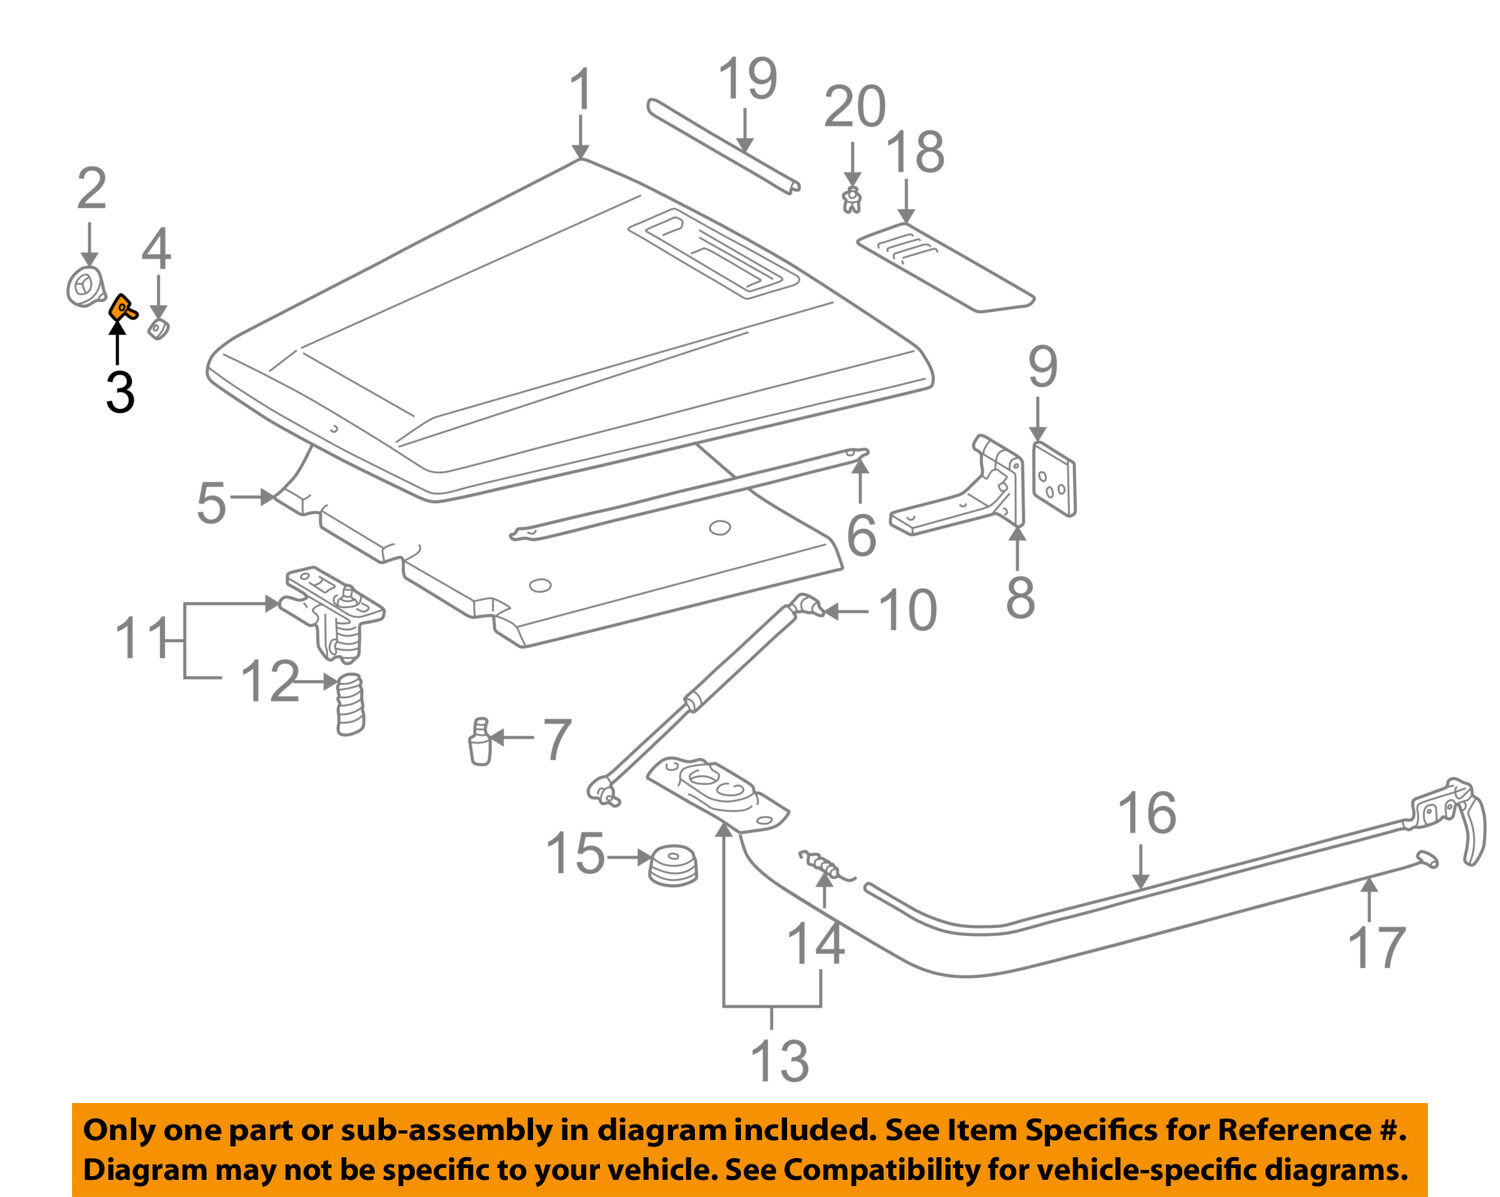 Mercedes Benz Windshield Wiper Motor Wiring Diagram Trusted Ford Repalcement Parts And G500 Diagrams Door